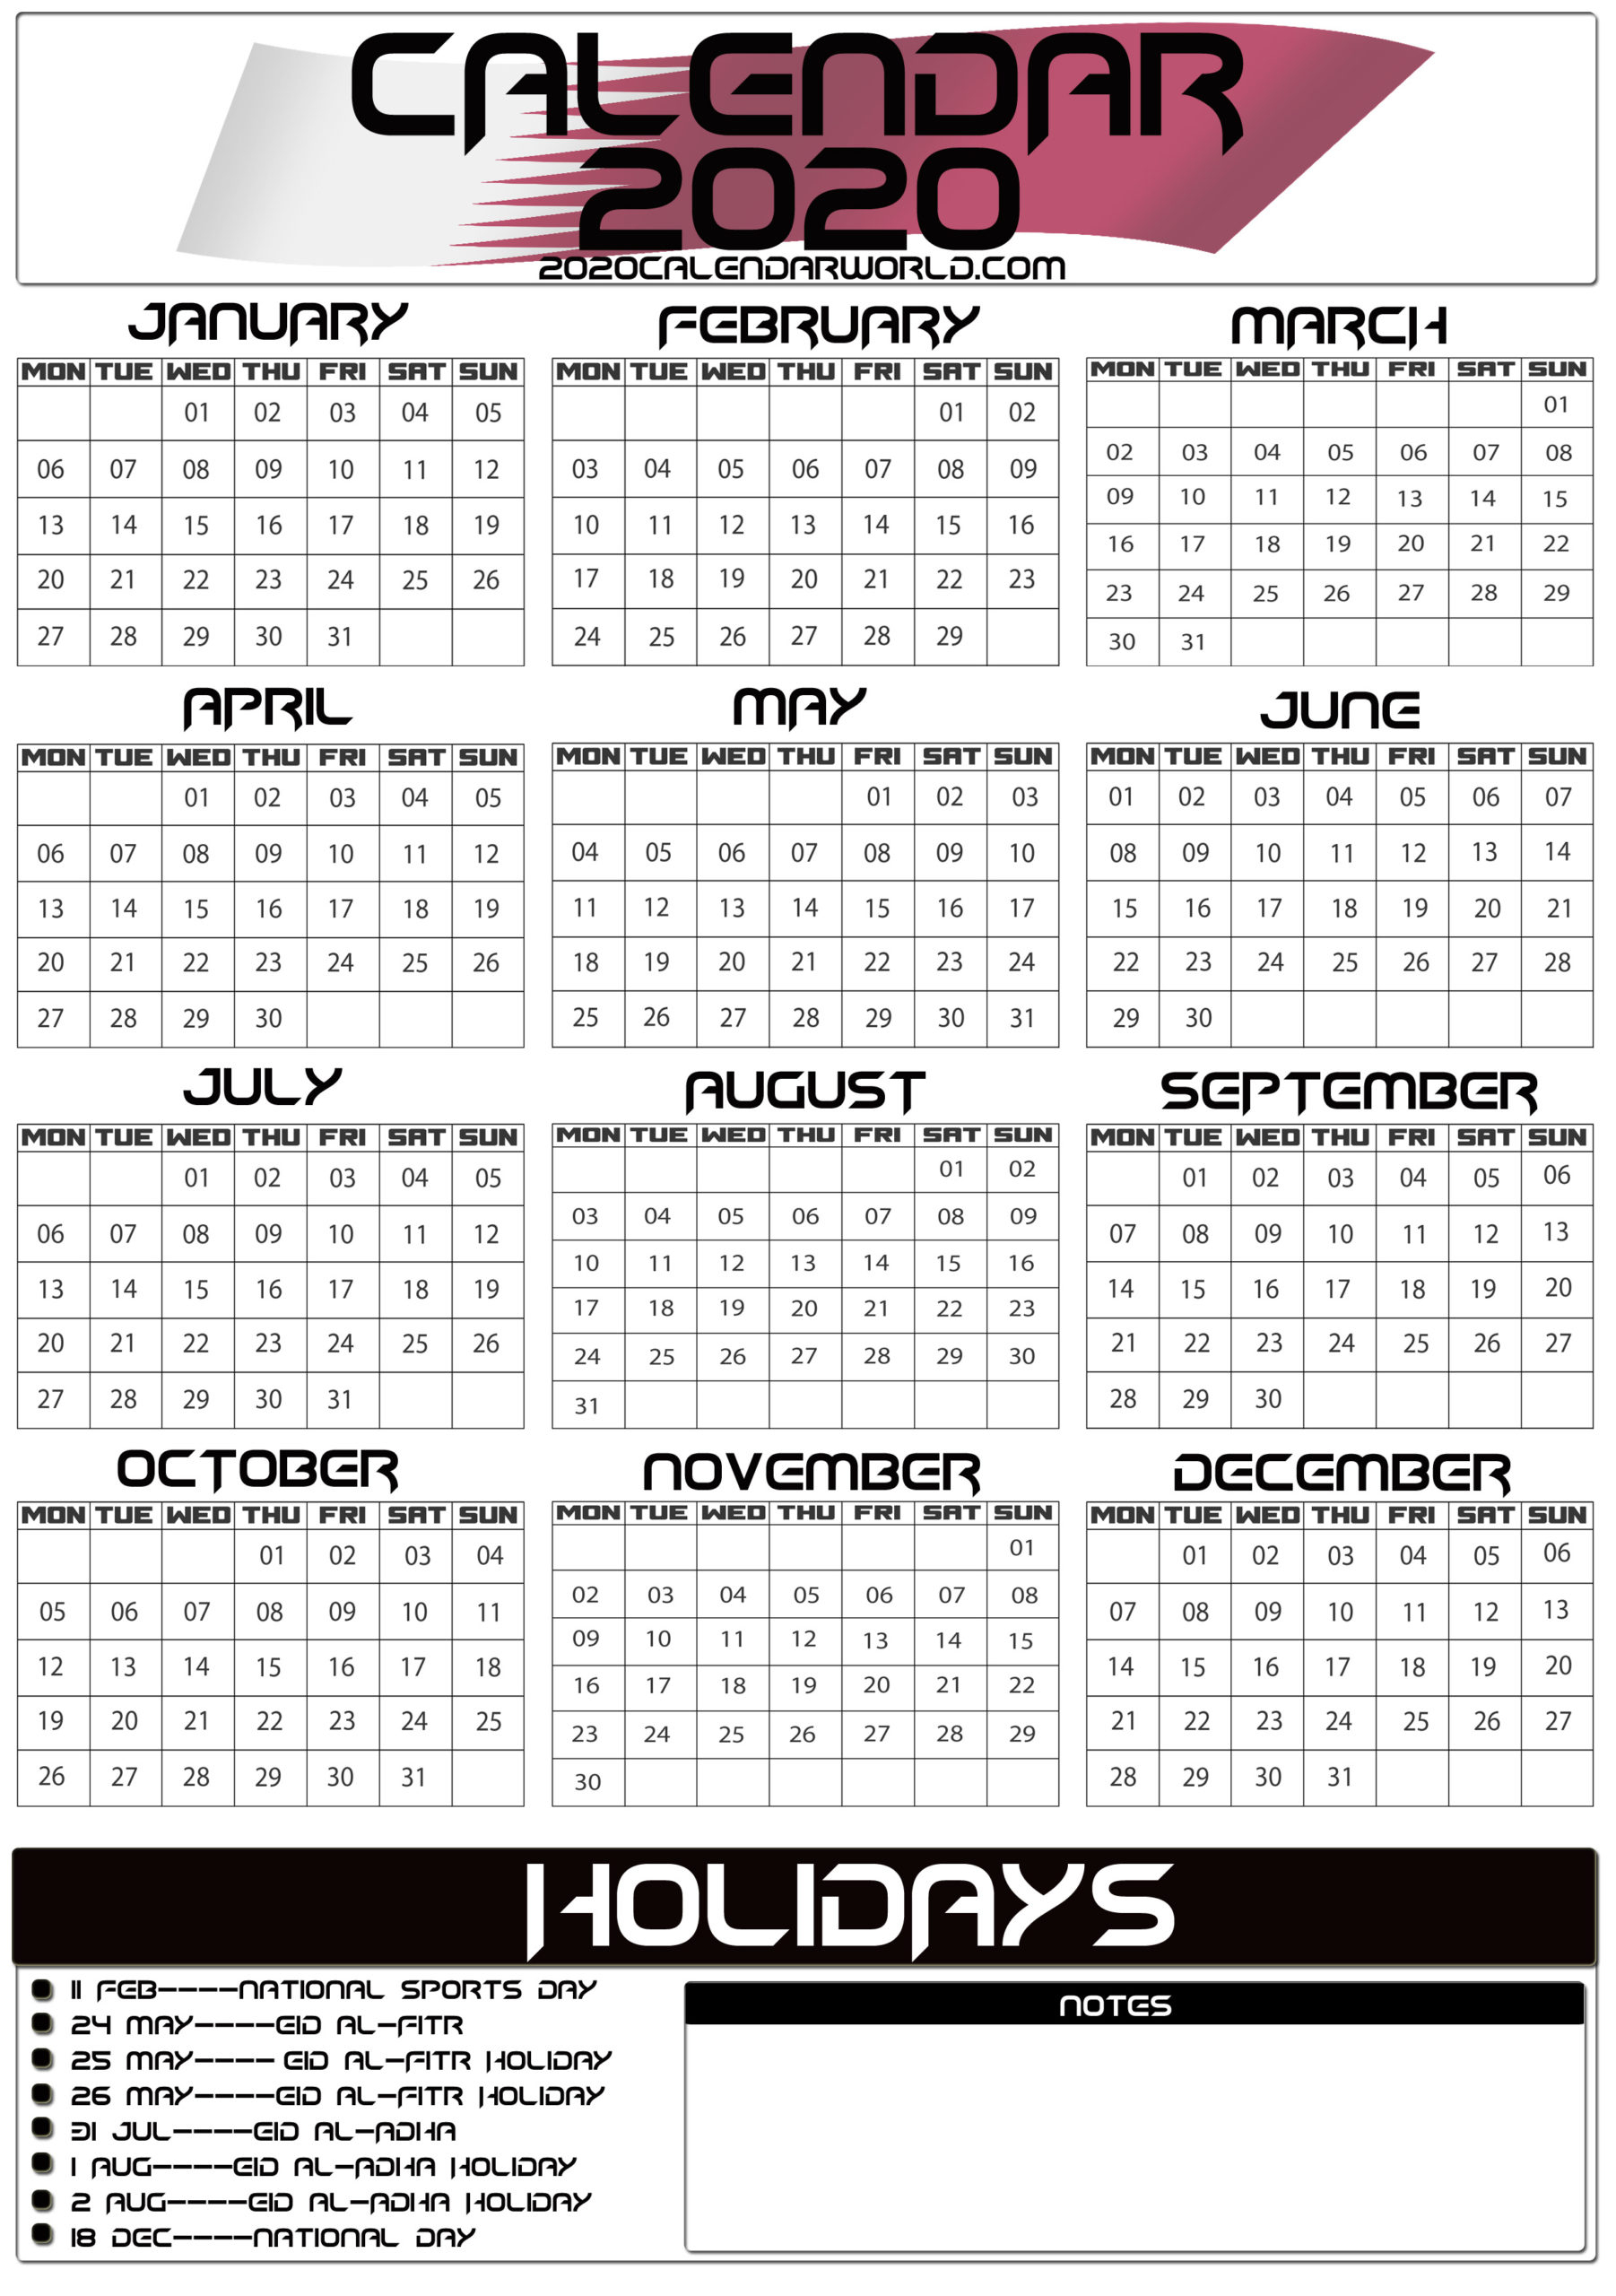 Qatar 2020 Calendar With Holiday Printable Template Download intended for 2020 Calendar Qatar Printable